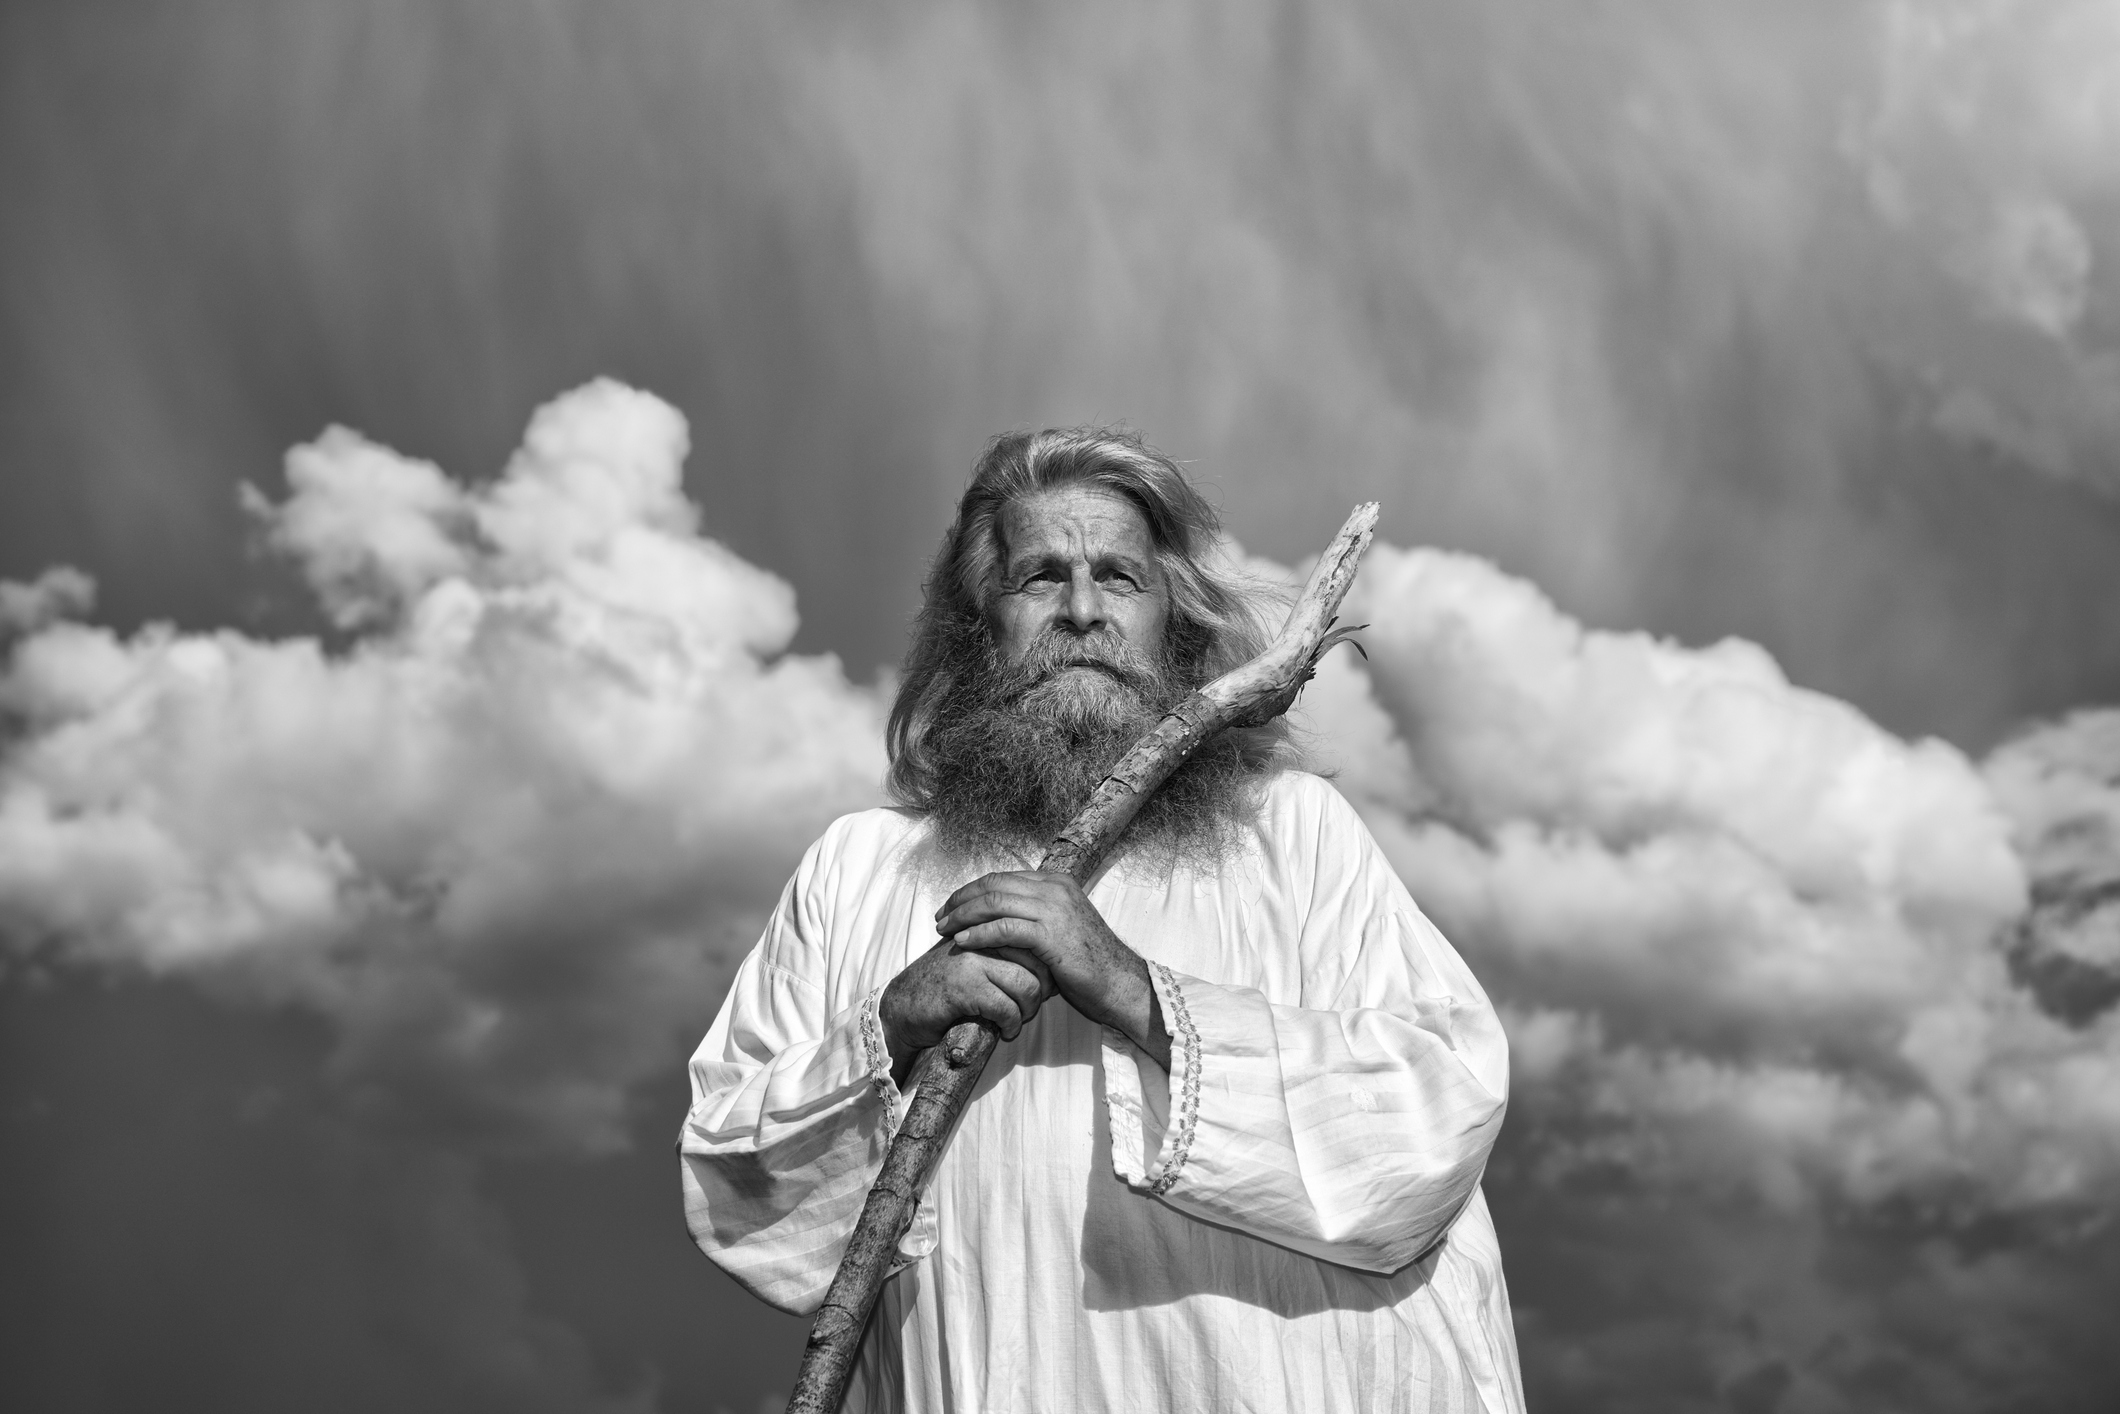 Moses with his staff. By Greg Taylor with The Journey: A New Generation Church of Christ